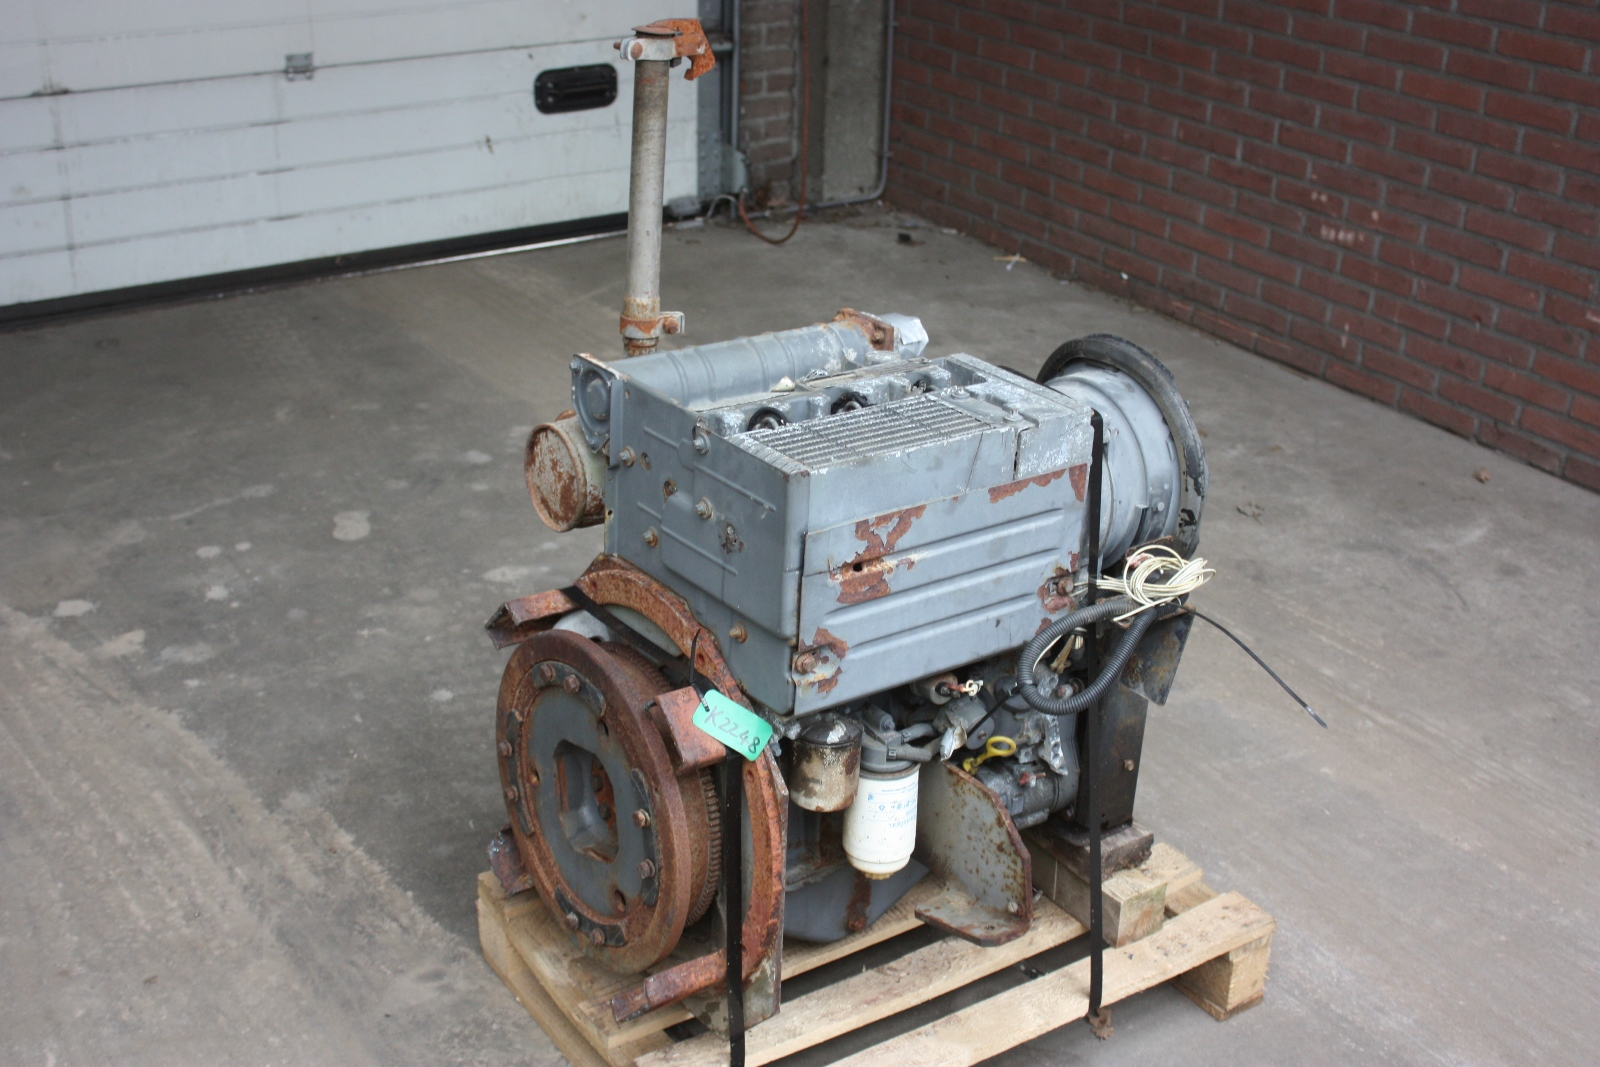 Deutz 3 cylinder diesel engine heavy equipment by autos post for Deutz motor for sale